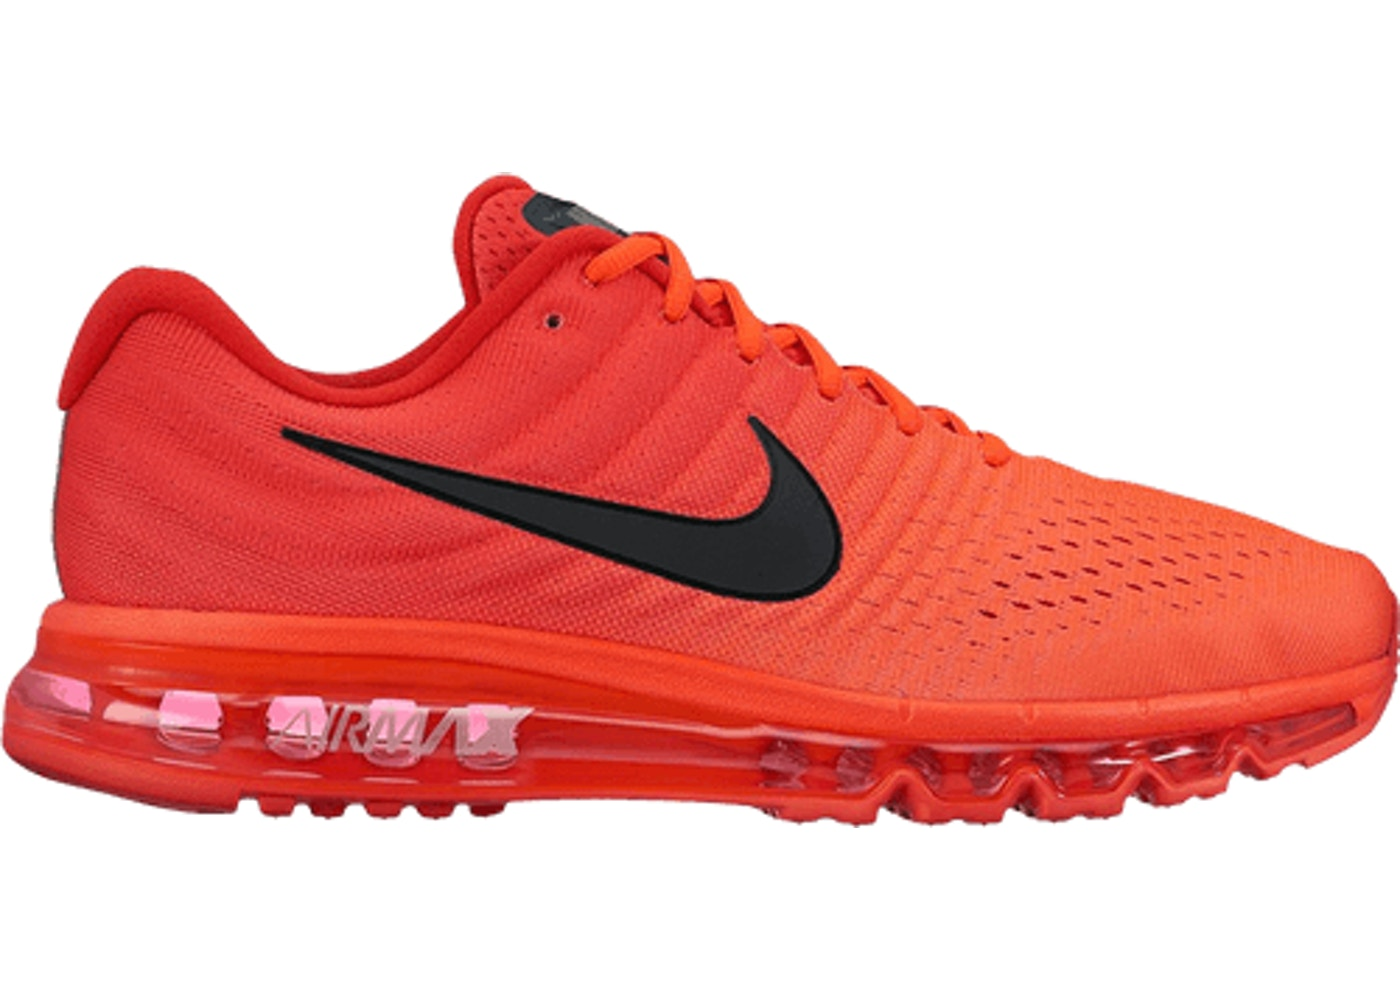 newest 1114b bb5a3 Air Max 2017 Bright Crimson